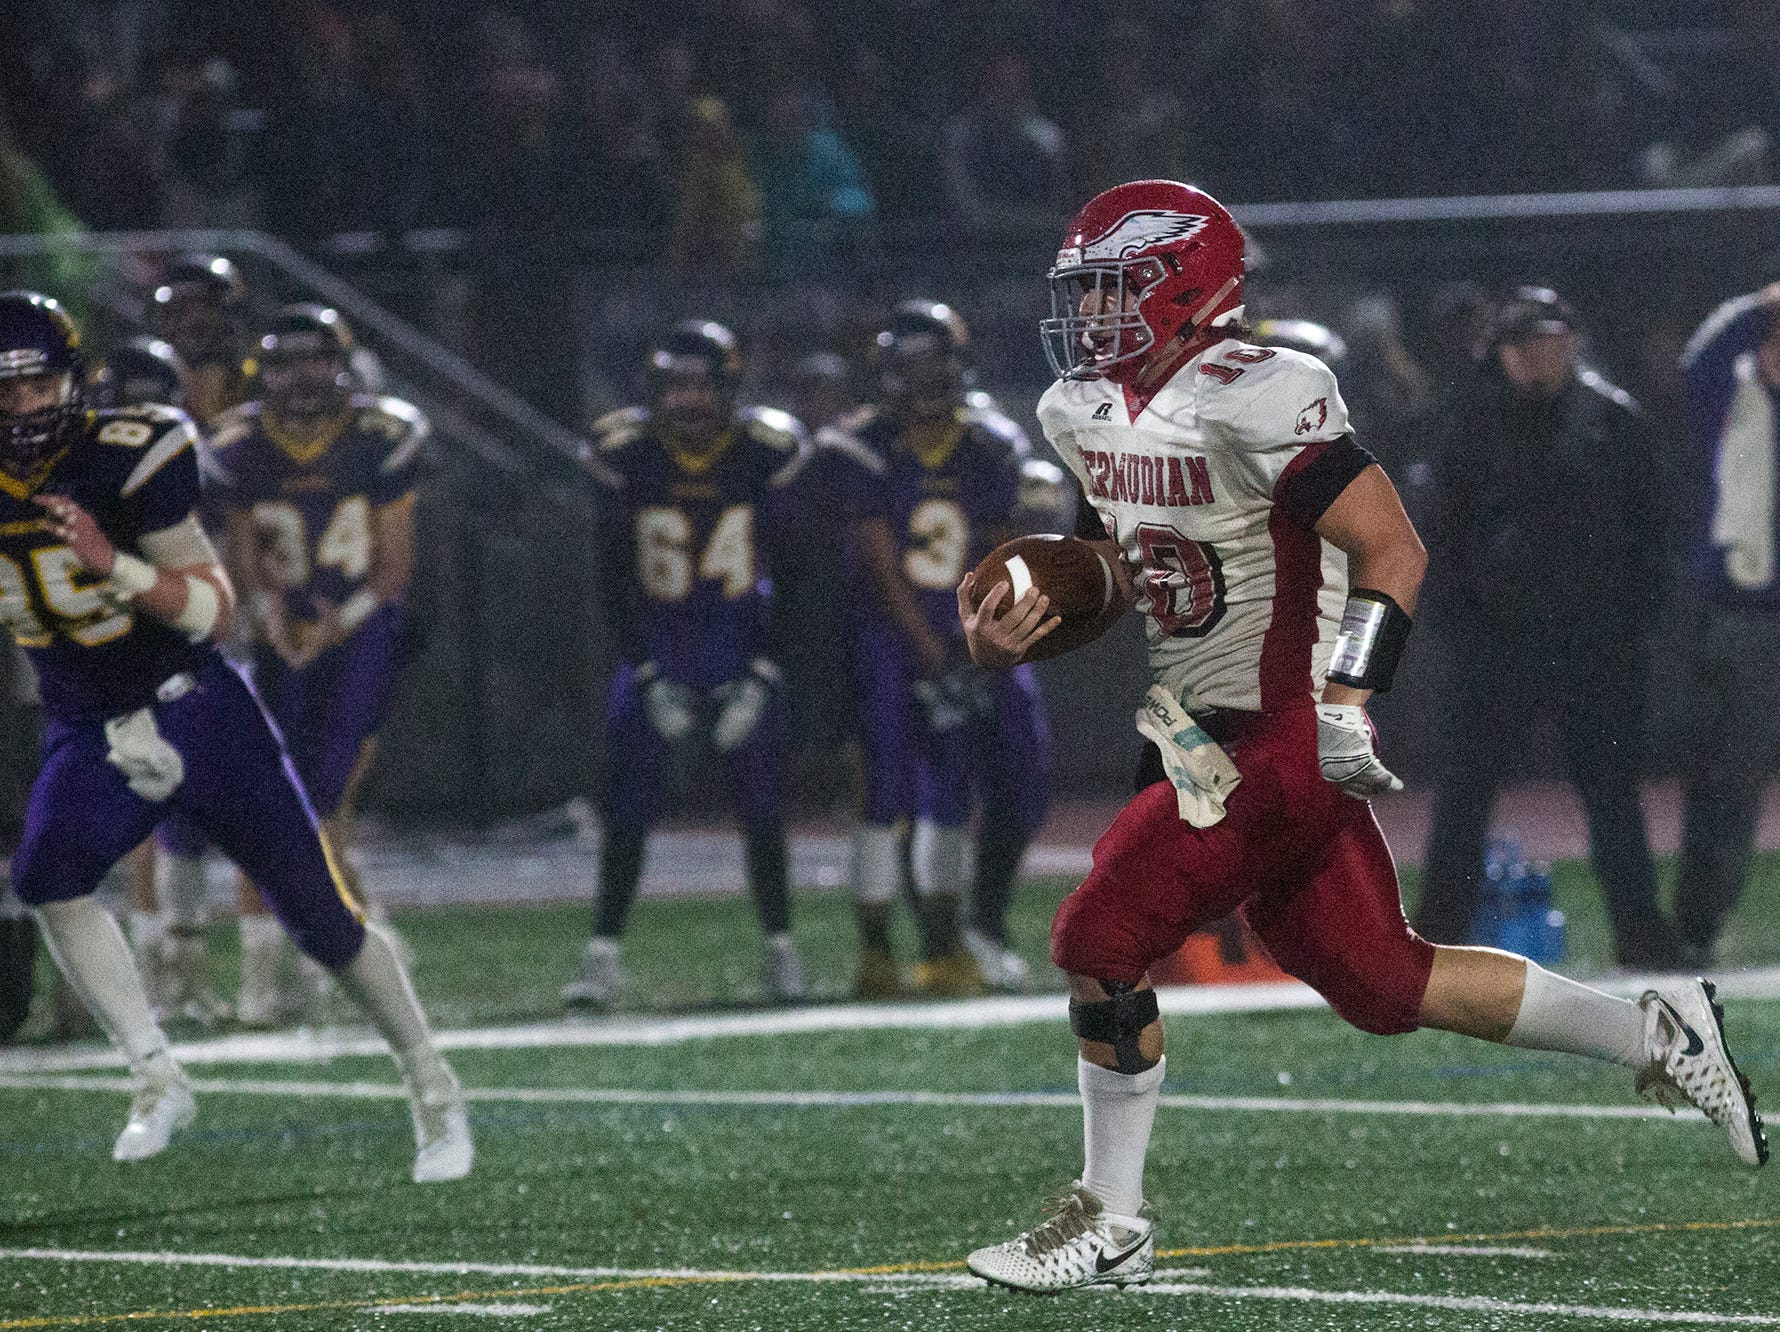 Bermudian Springs quarterback Chase Dull, right, breaks a long run for the Eagles' third touchdown. Bermudian Springs defeats Lancaster Catholic 20-10 in a District 3 Class 3A semifinal football game at Lancaster Catholic's Crusader Stadium, Friday, November 9, 2018.